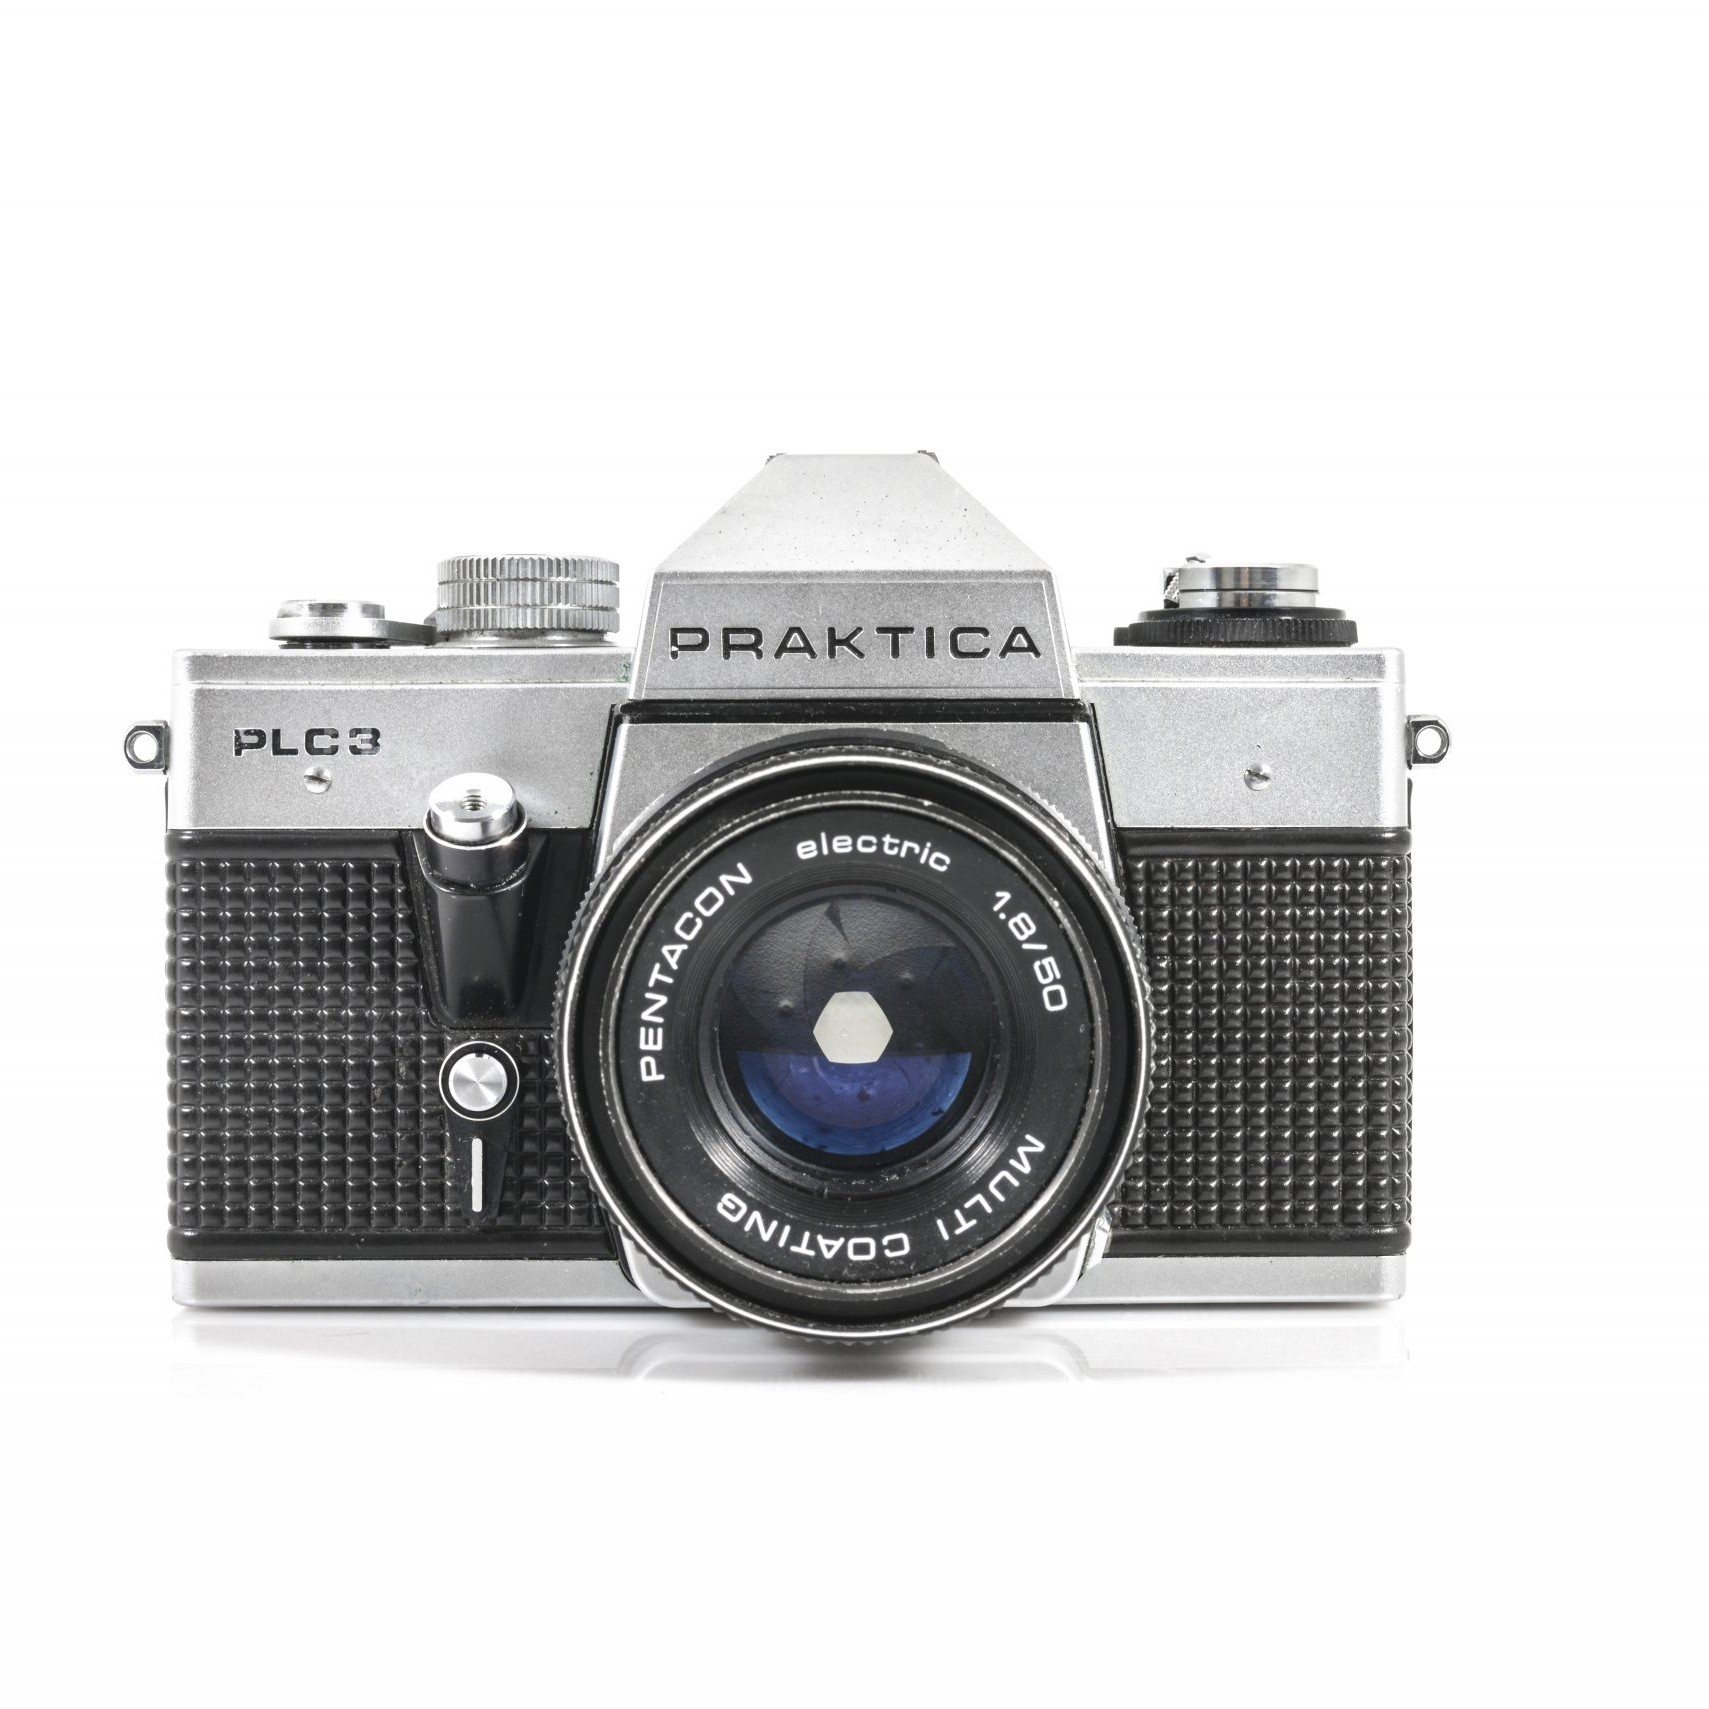 Praktica PLC3 35mm Film Camera with Pentacon 50mm F1.8 Lens (Tested and Working)